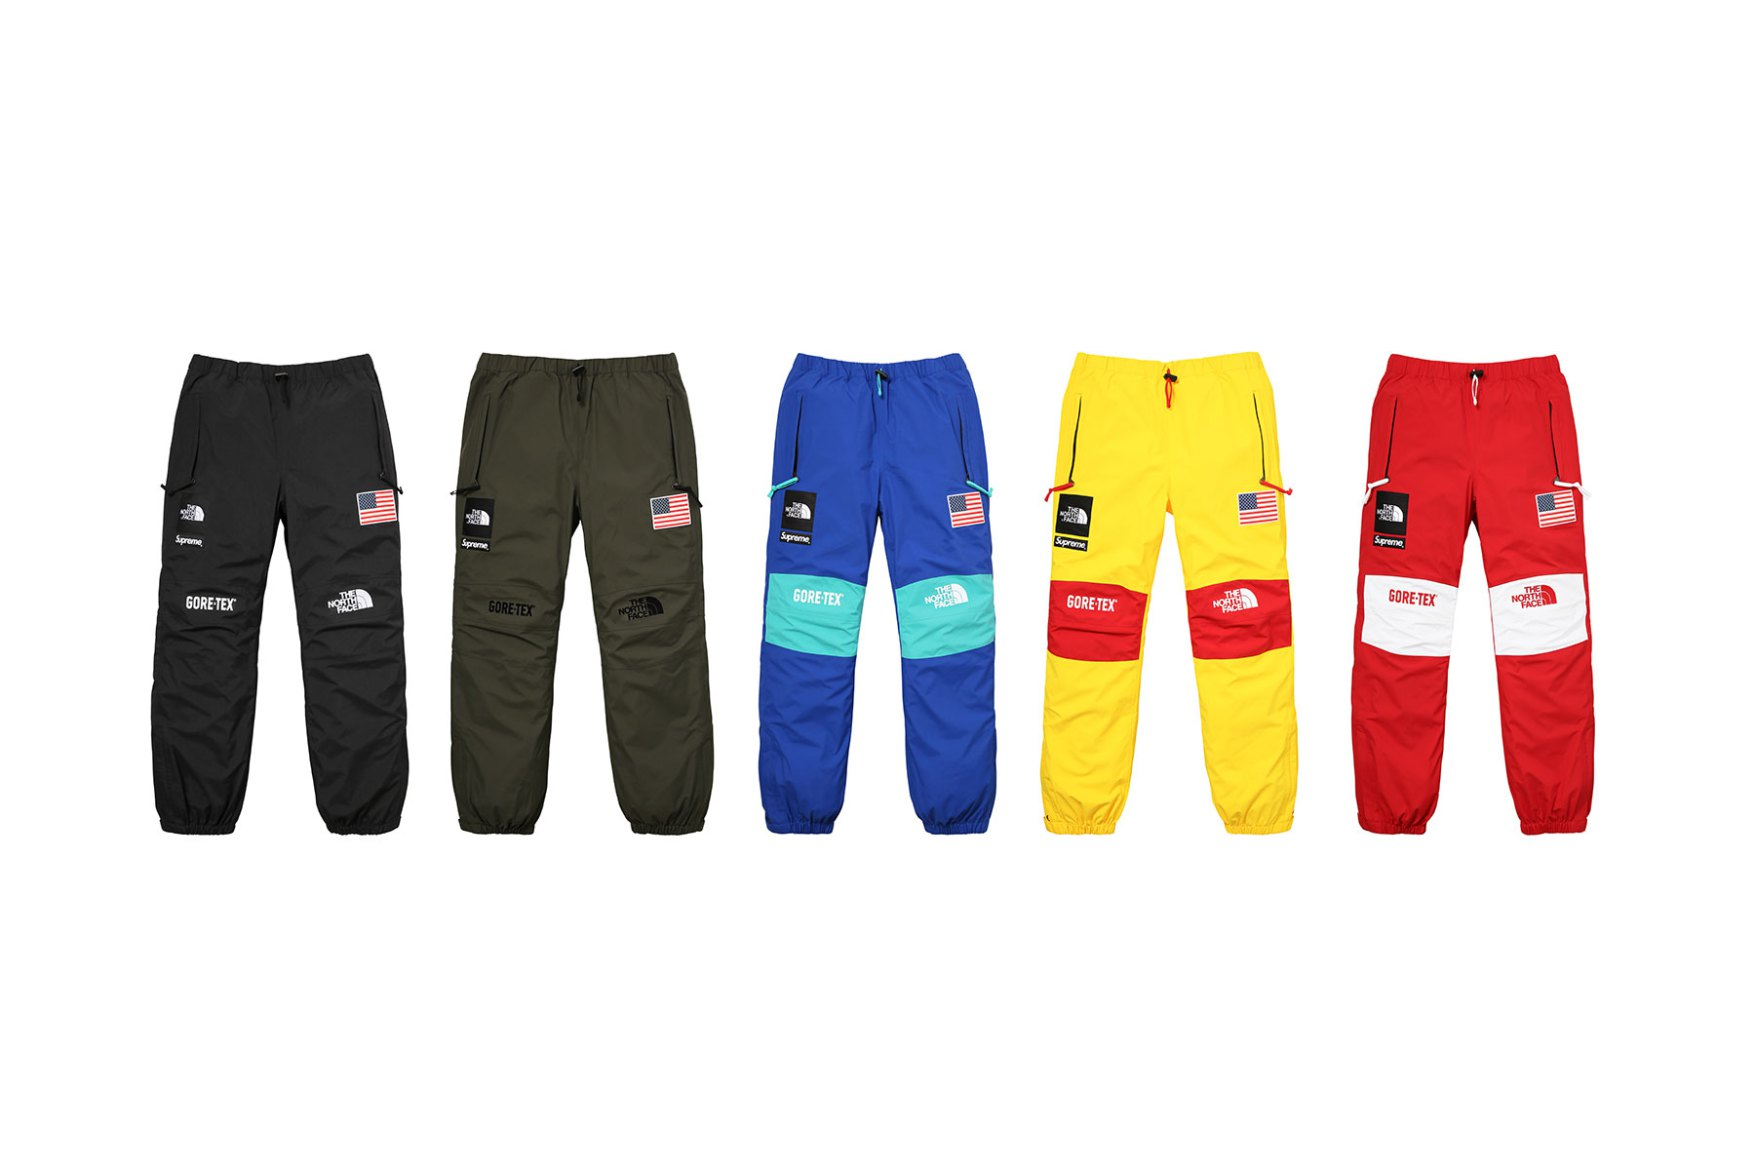 supreme-the-north-face-2017-spring-summer-group-gore-tex-pant-21